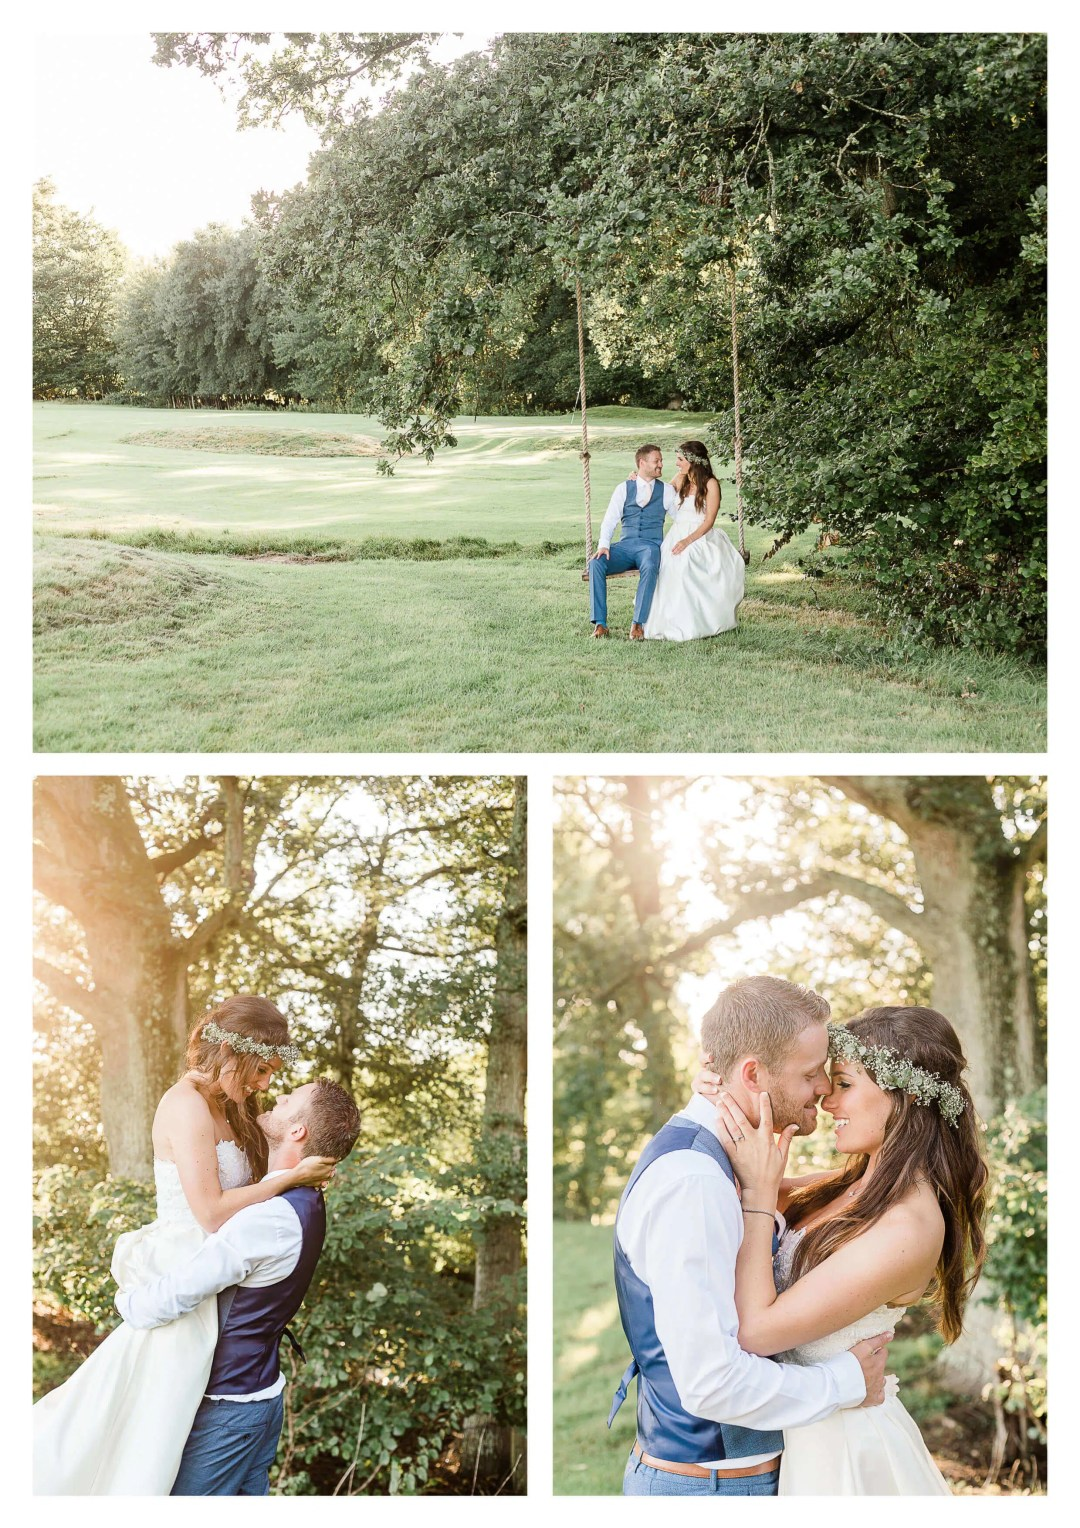 Brookfield Barn swing wedding photography | Horsham photographer